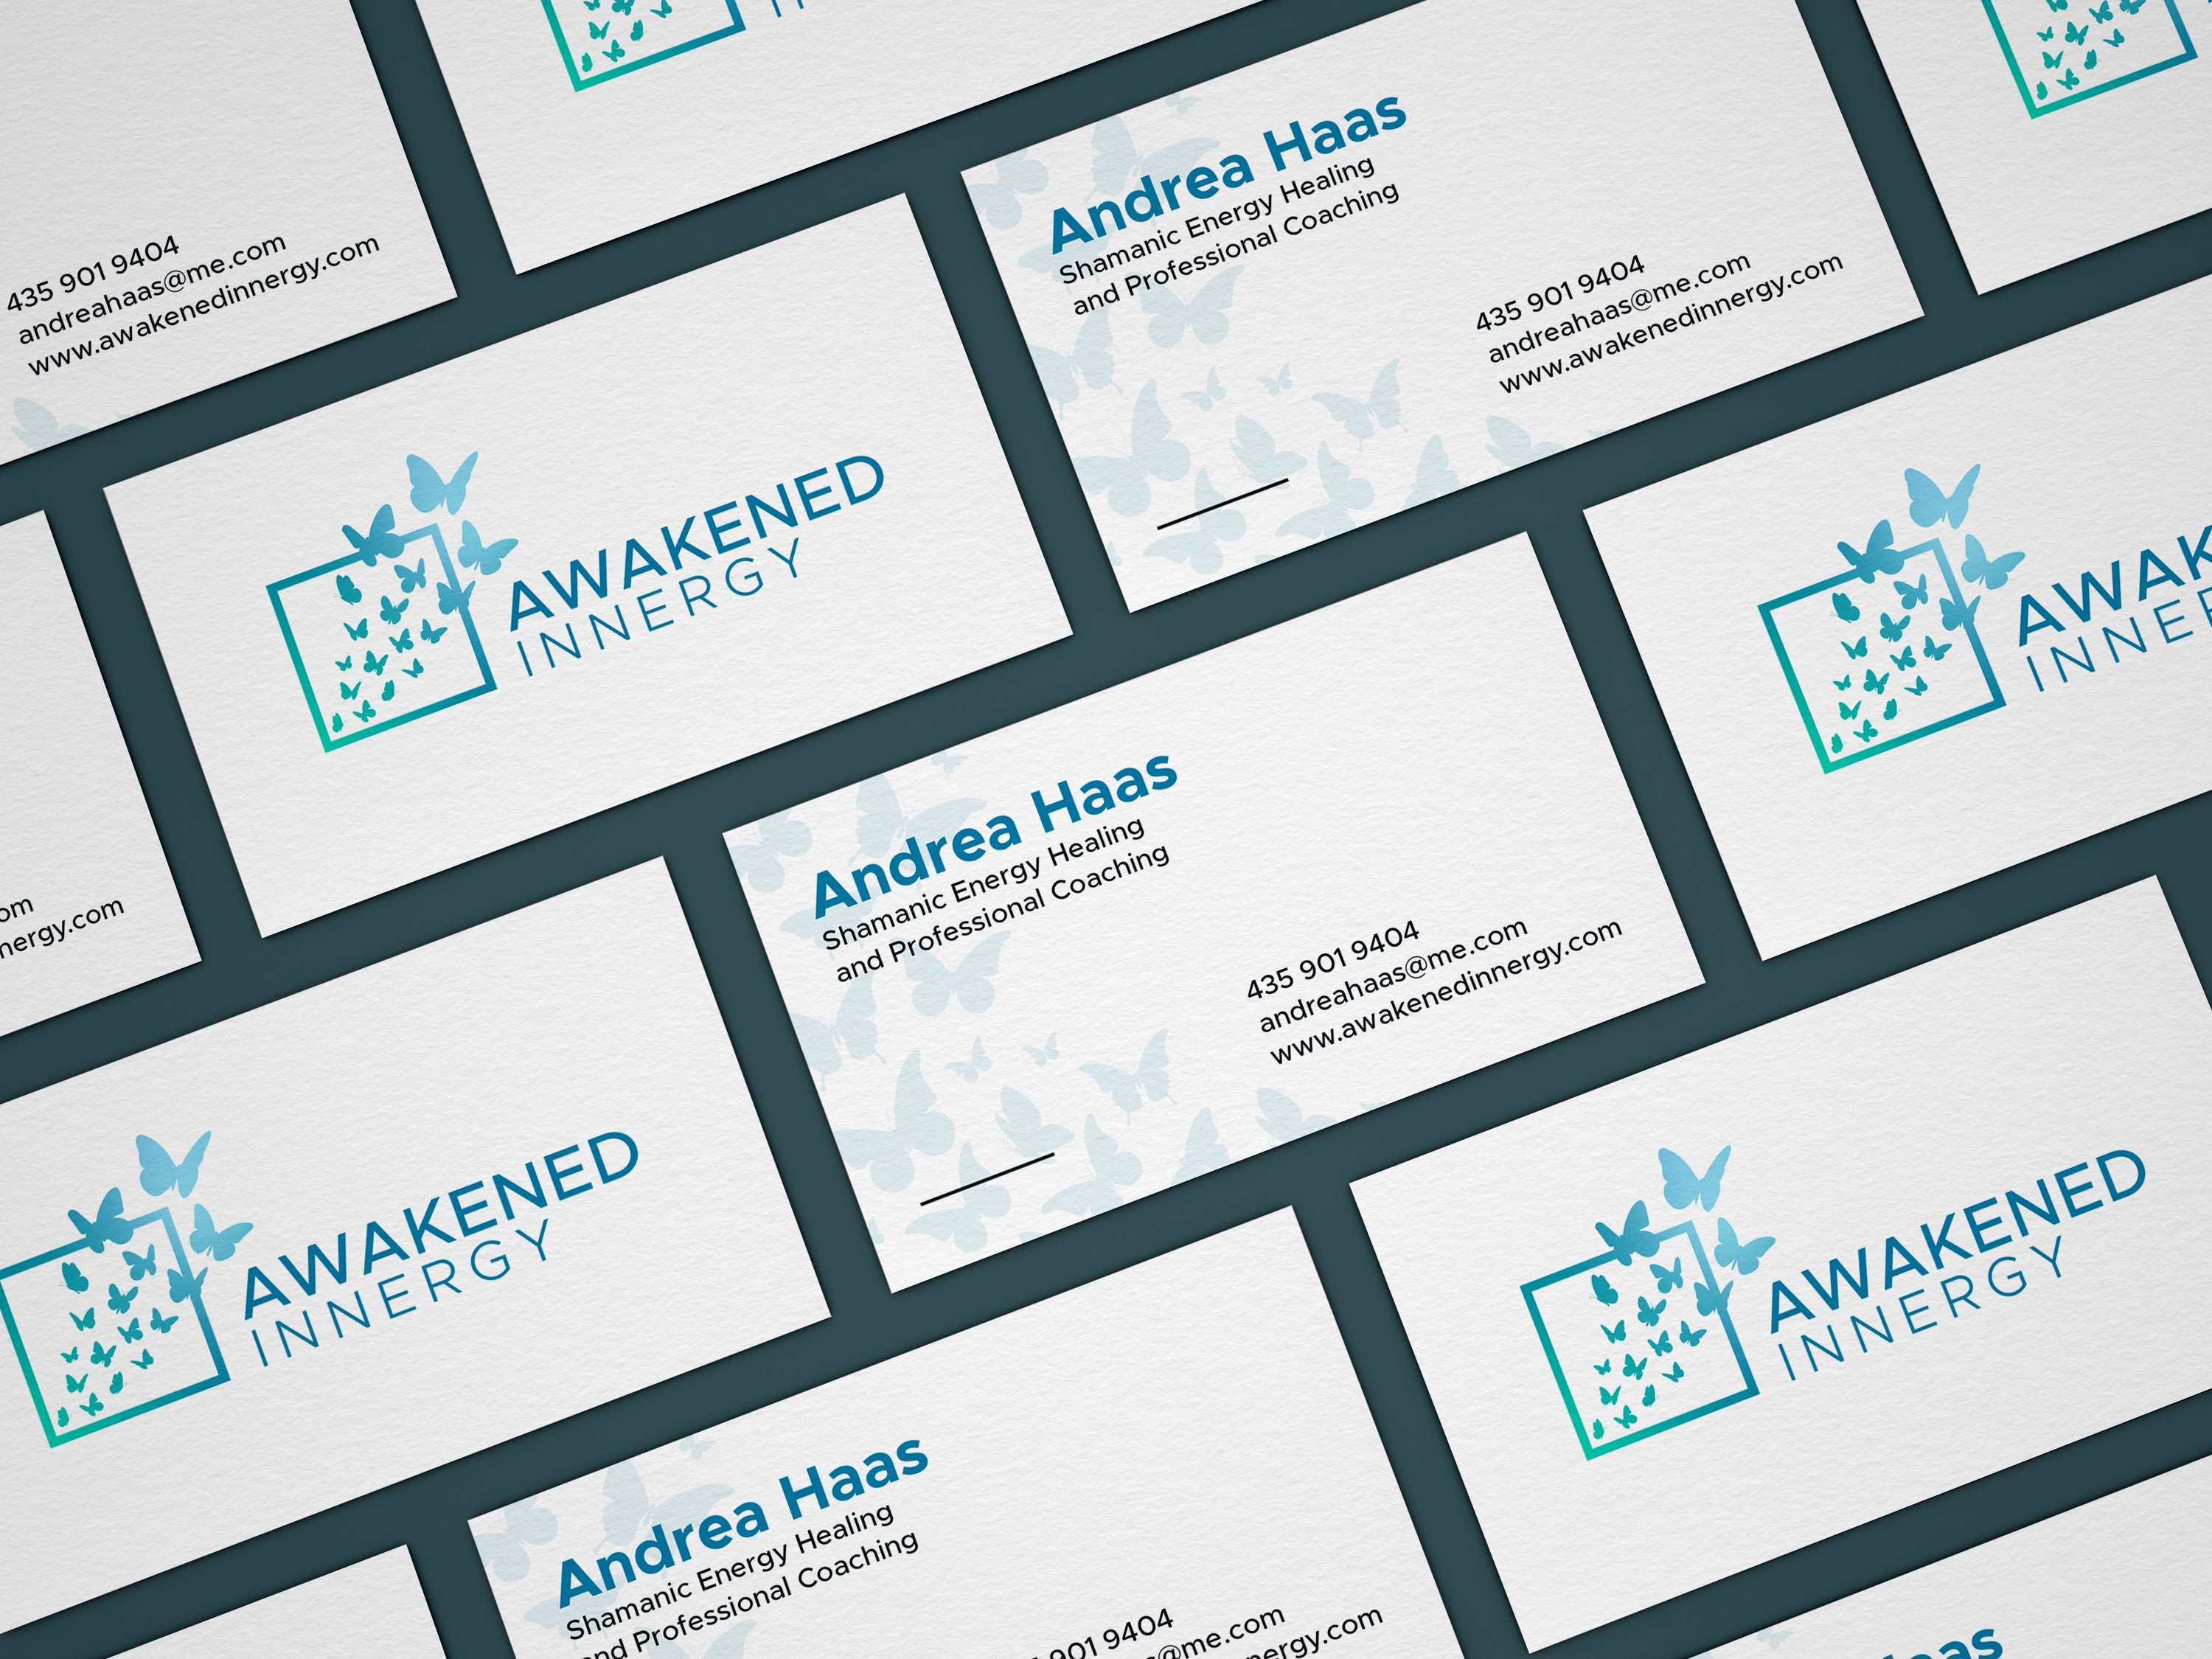 Awakened Innergy Business Cards